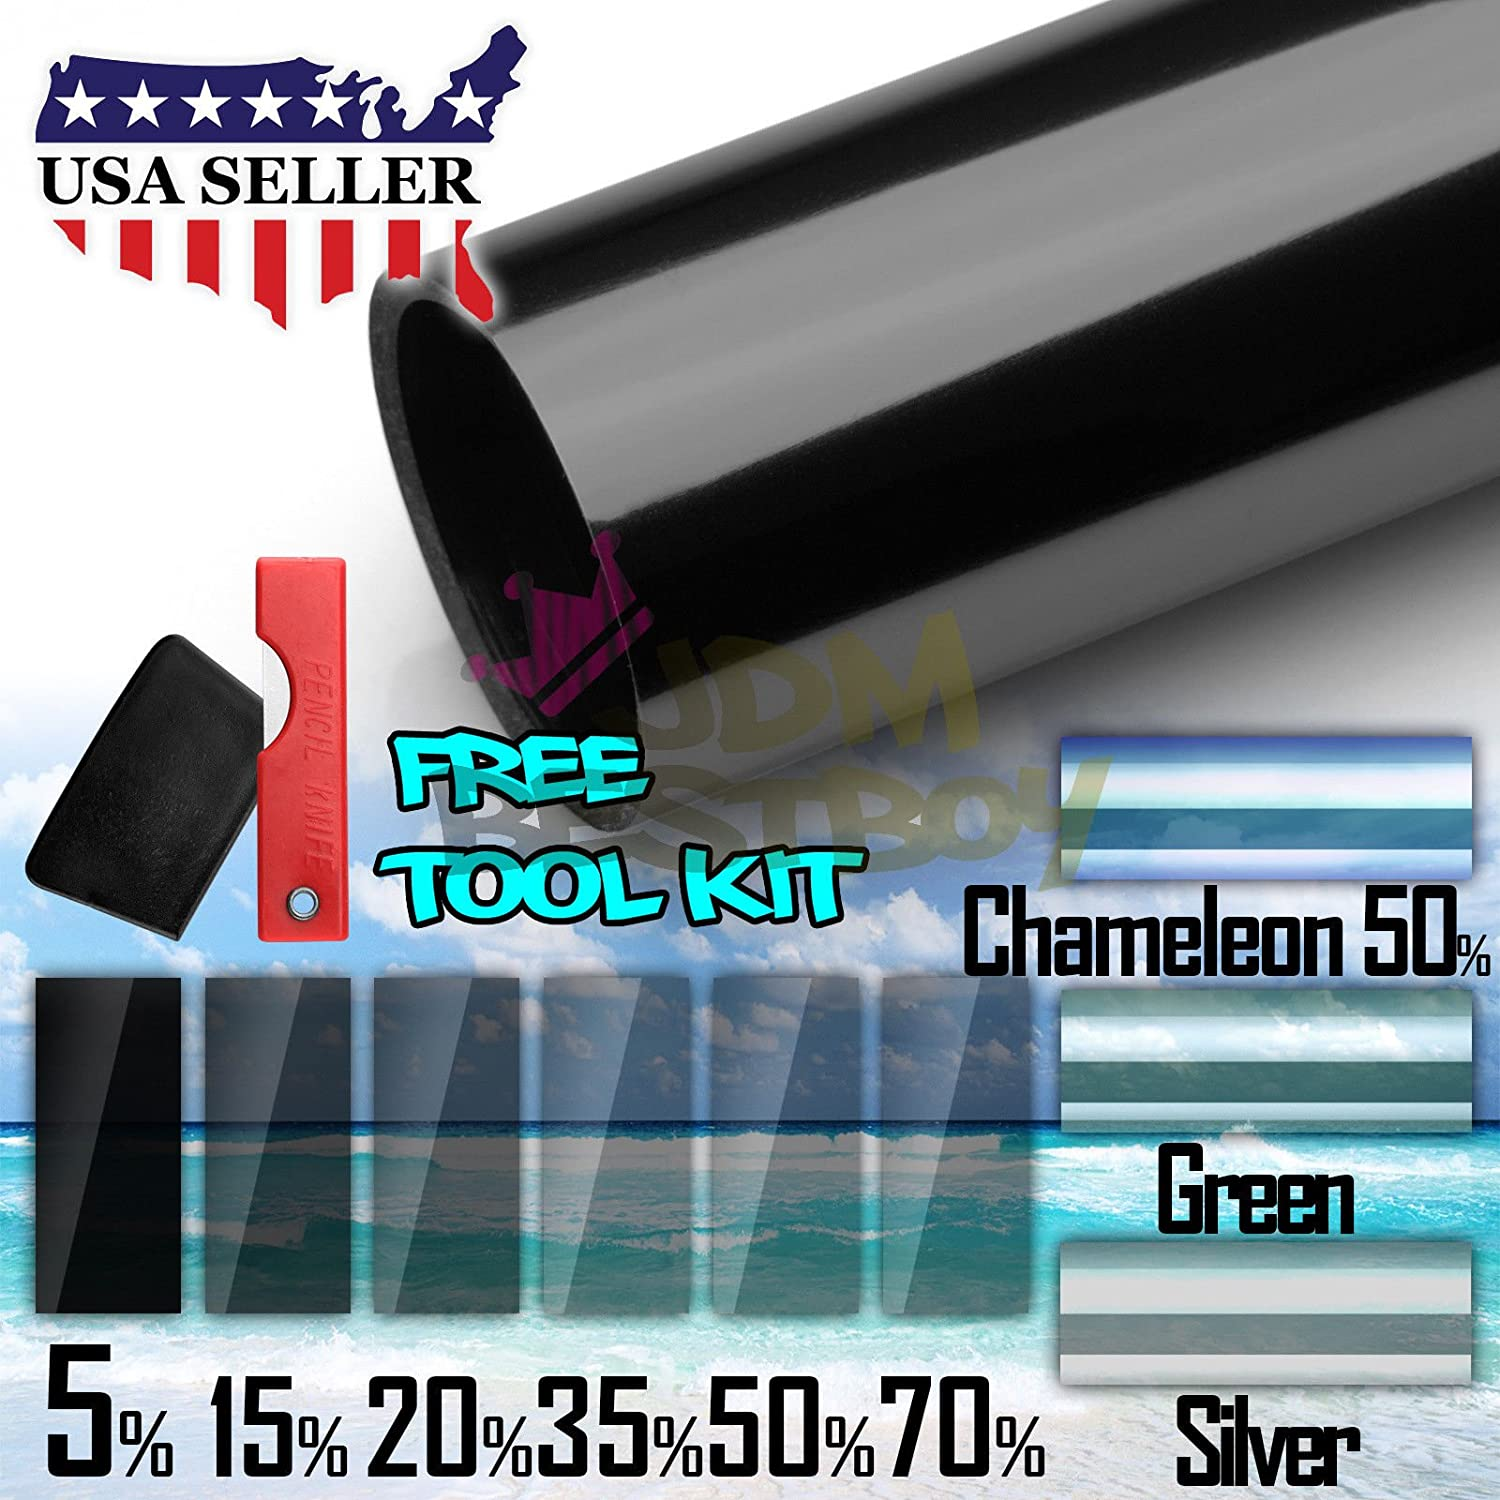 JDMBESTBOY Free Tool Kit 20'x120' Uncut Roll Window Charcoal Black VLT 70% Tint Film Car Glass Office Home Security